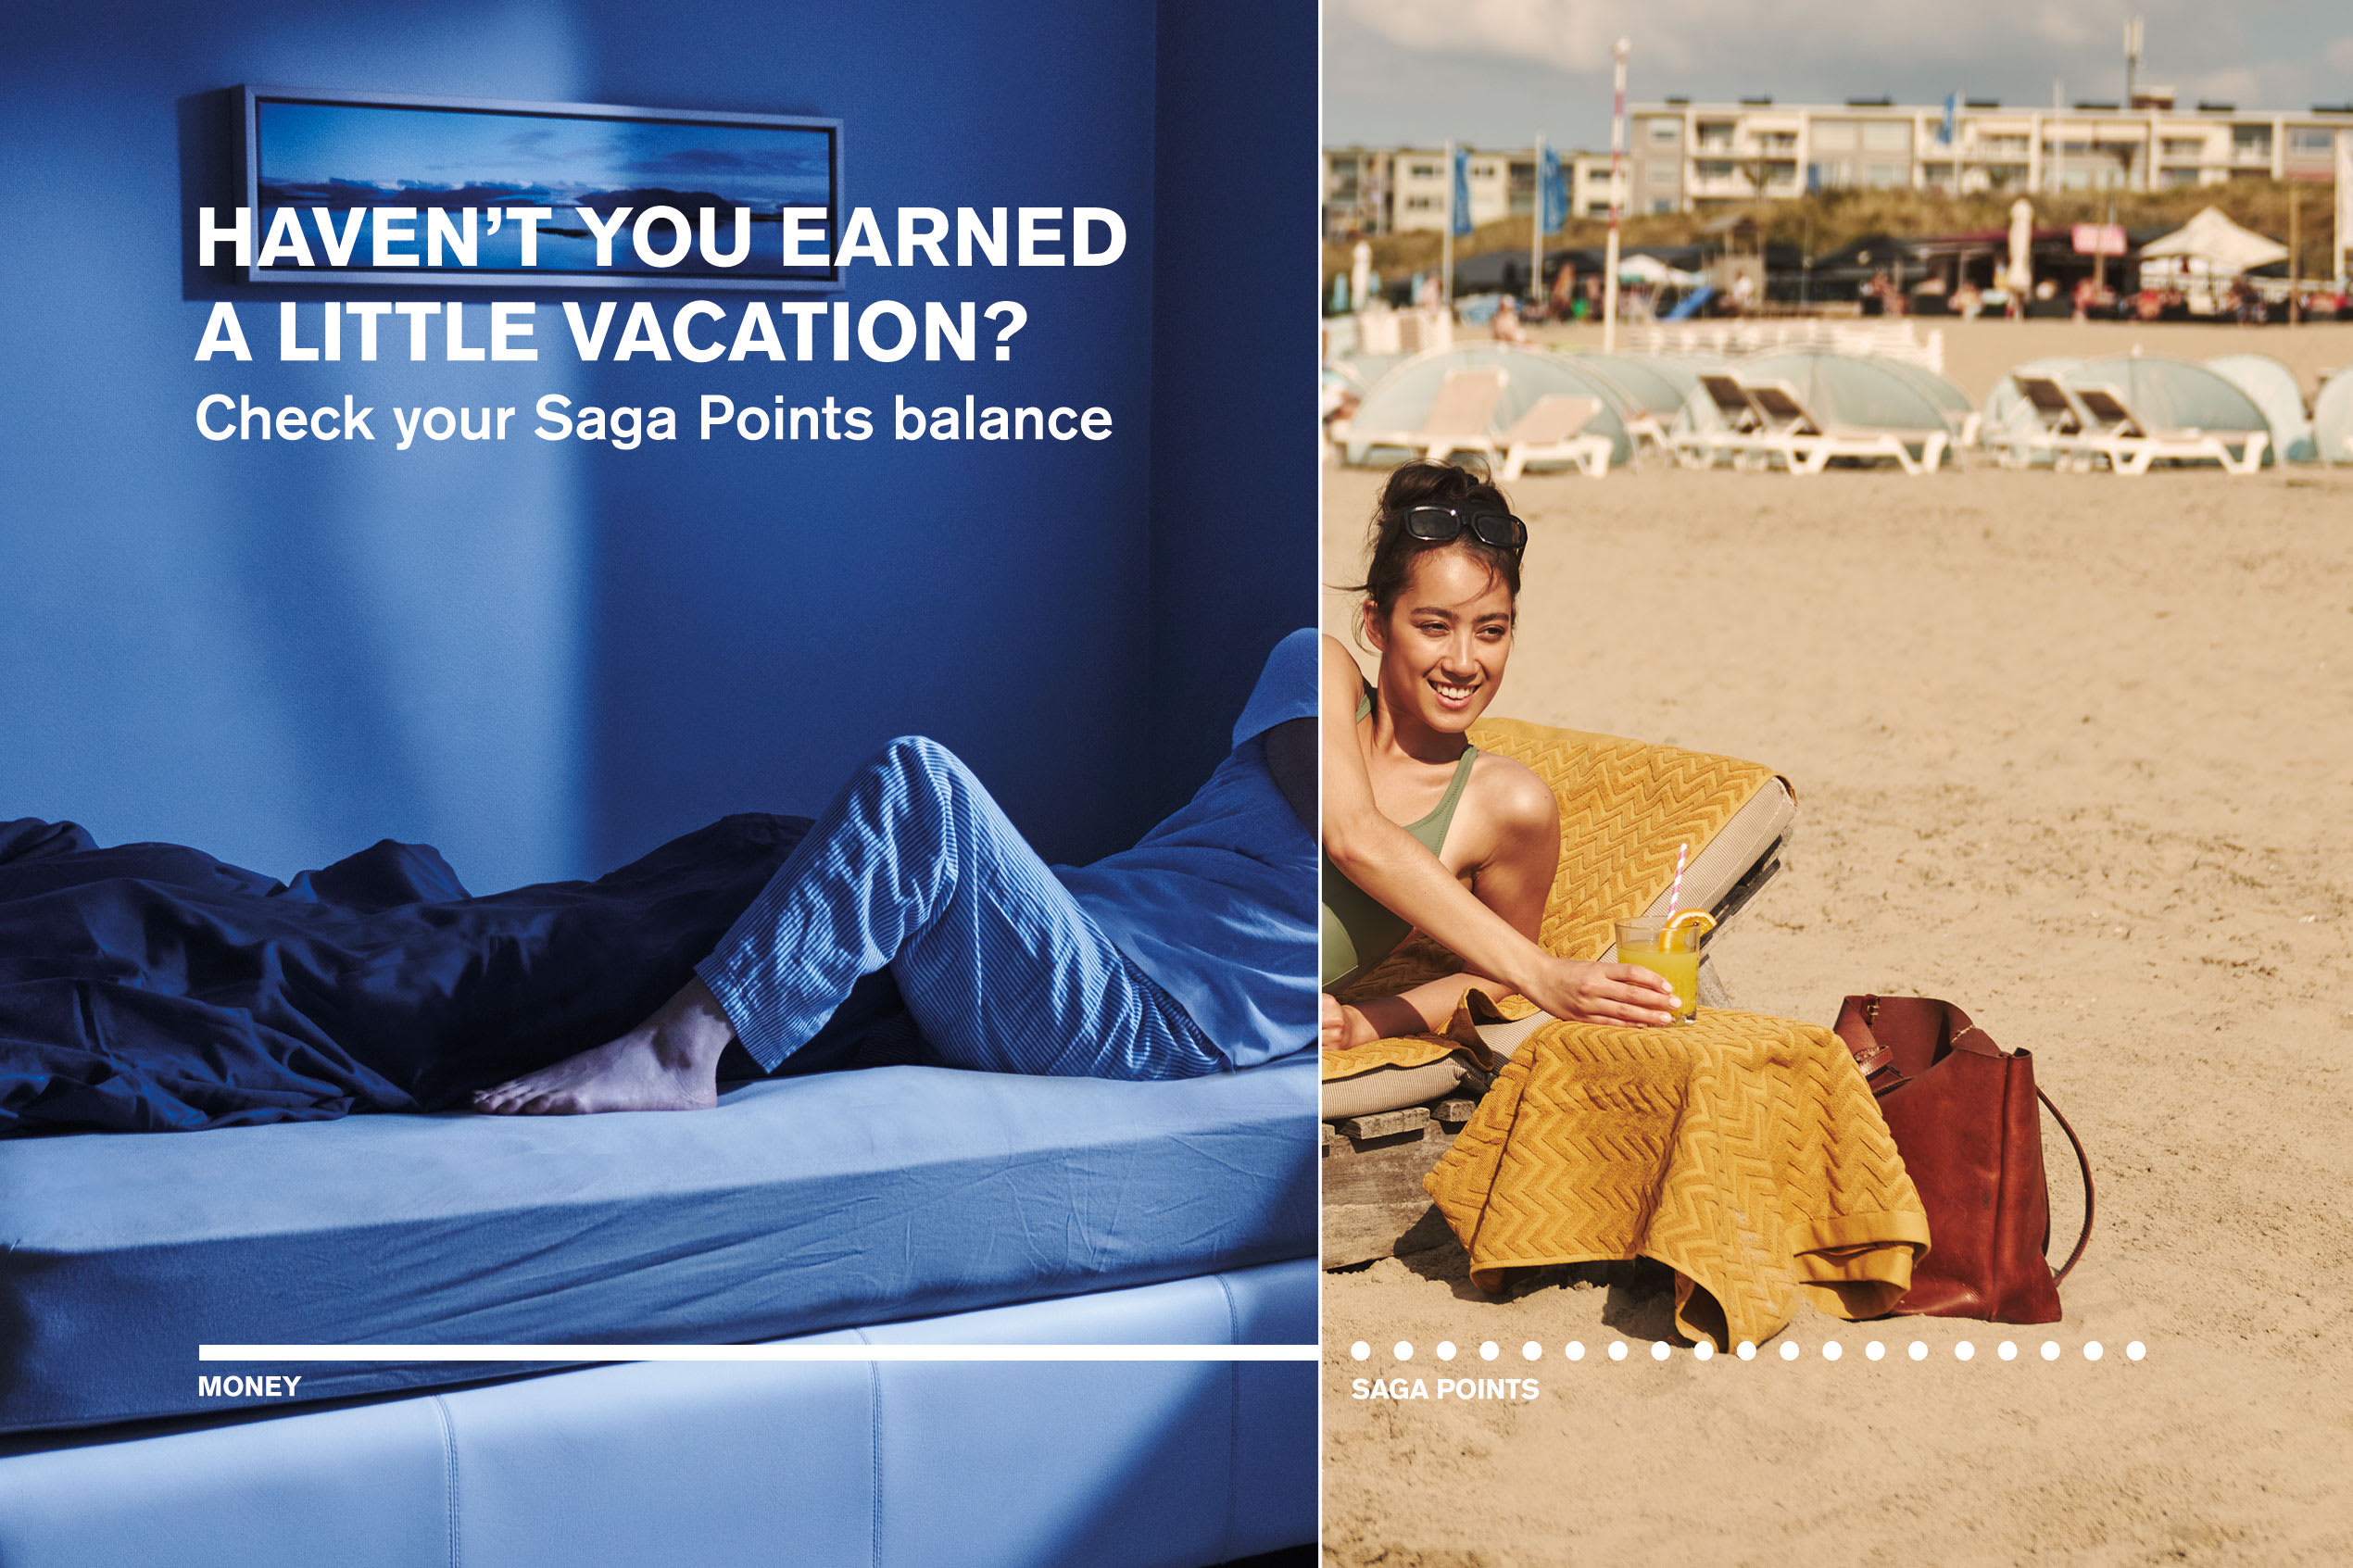 A woman pictured half in bed and half at the beach, with text overlay that reads 'Haven't you earned a little vacation?'